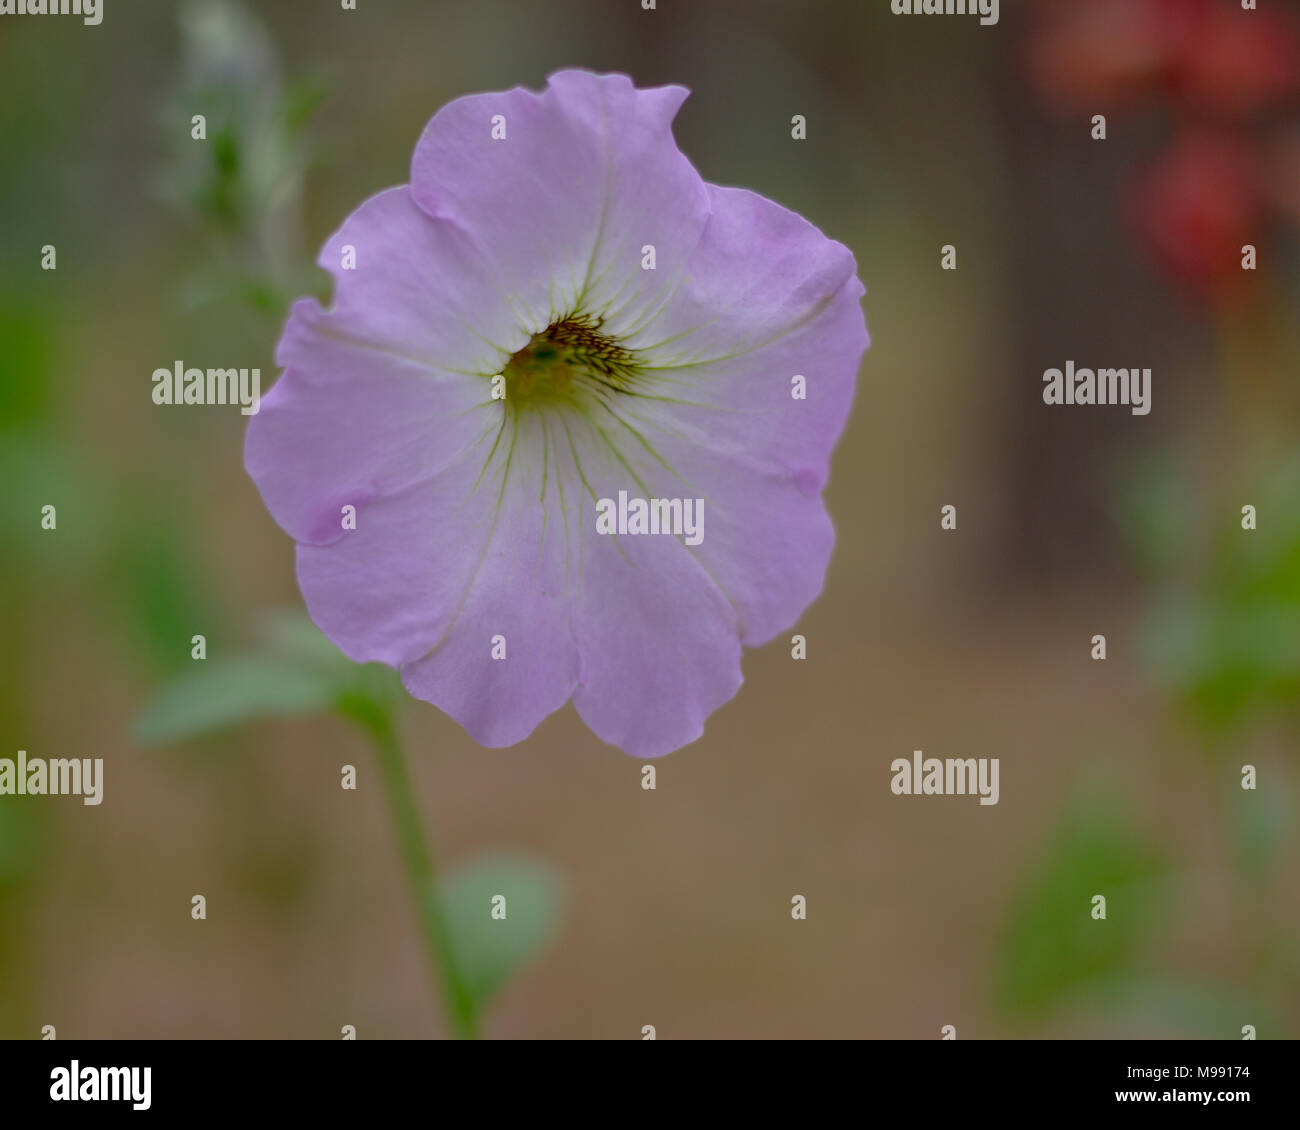 Malva is a genus of herbaceous annual, - Stock Image